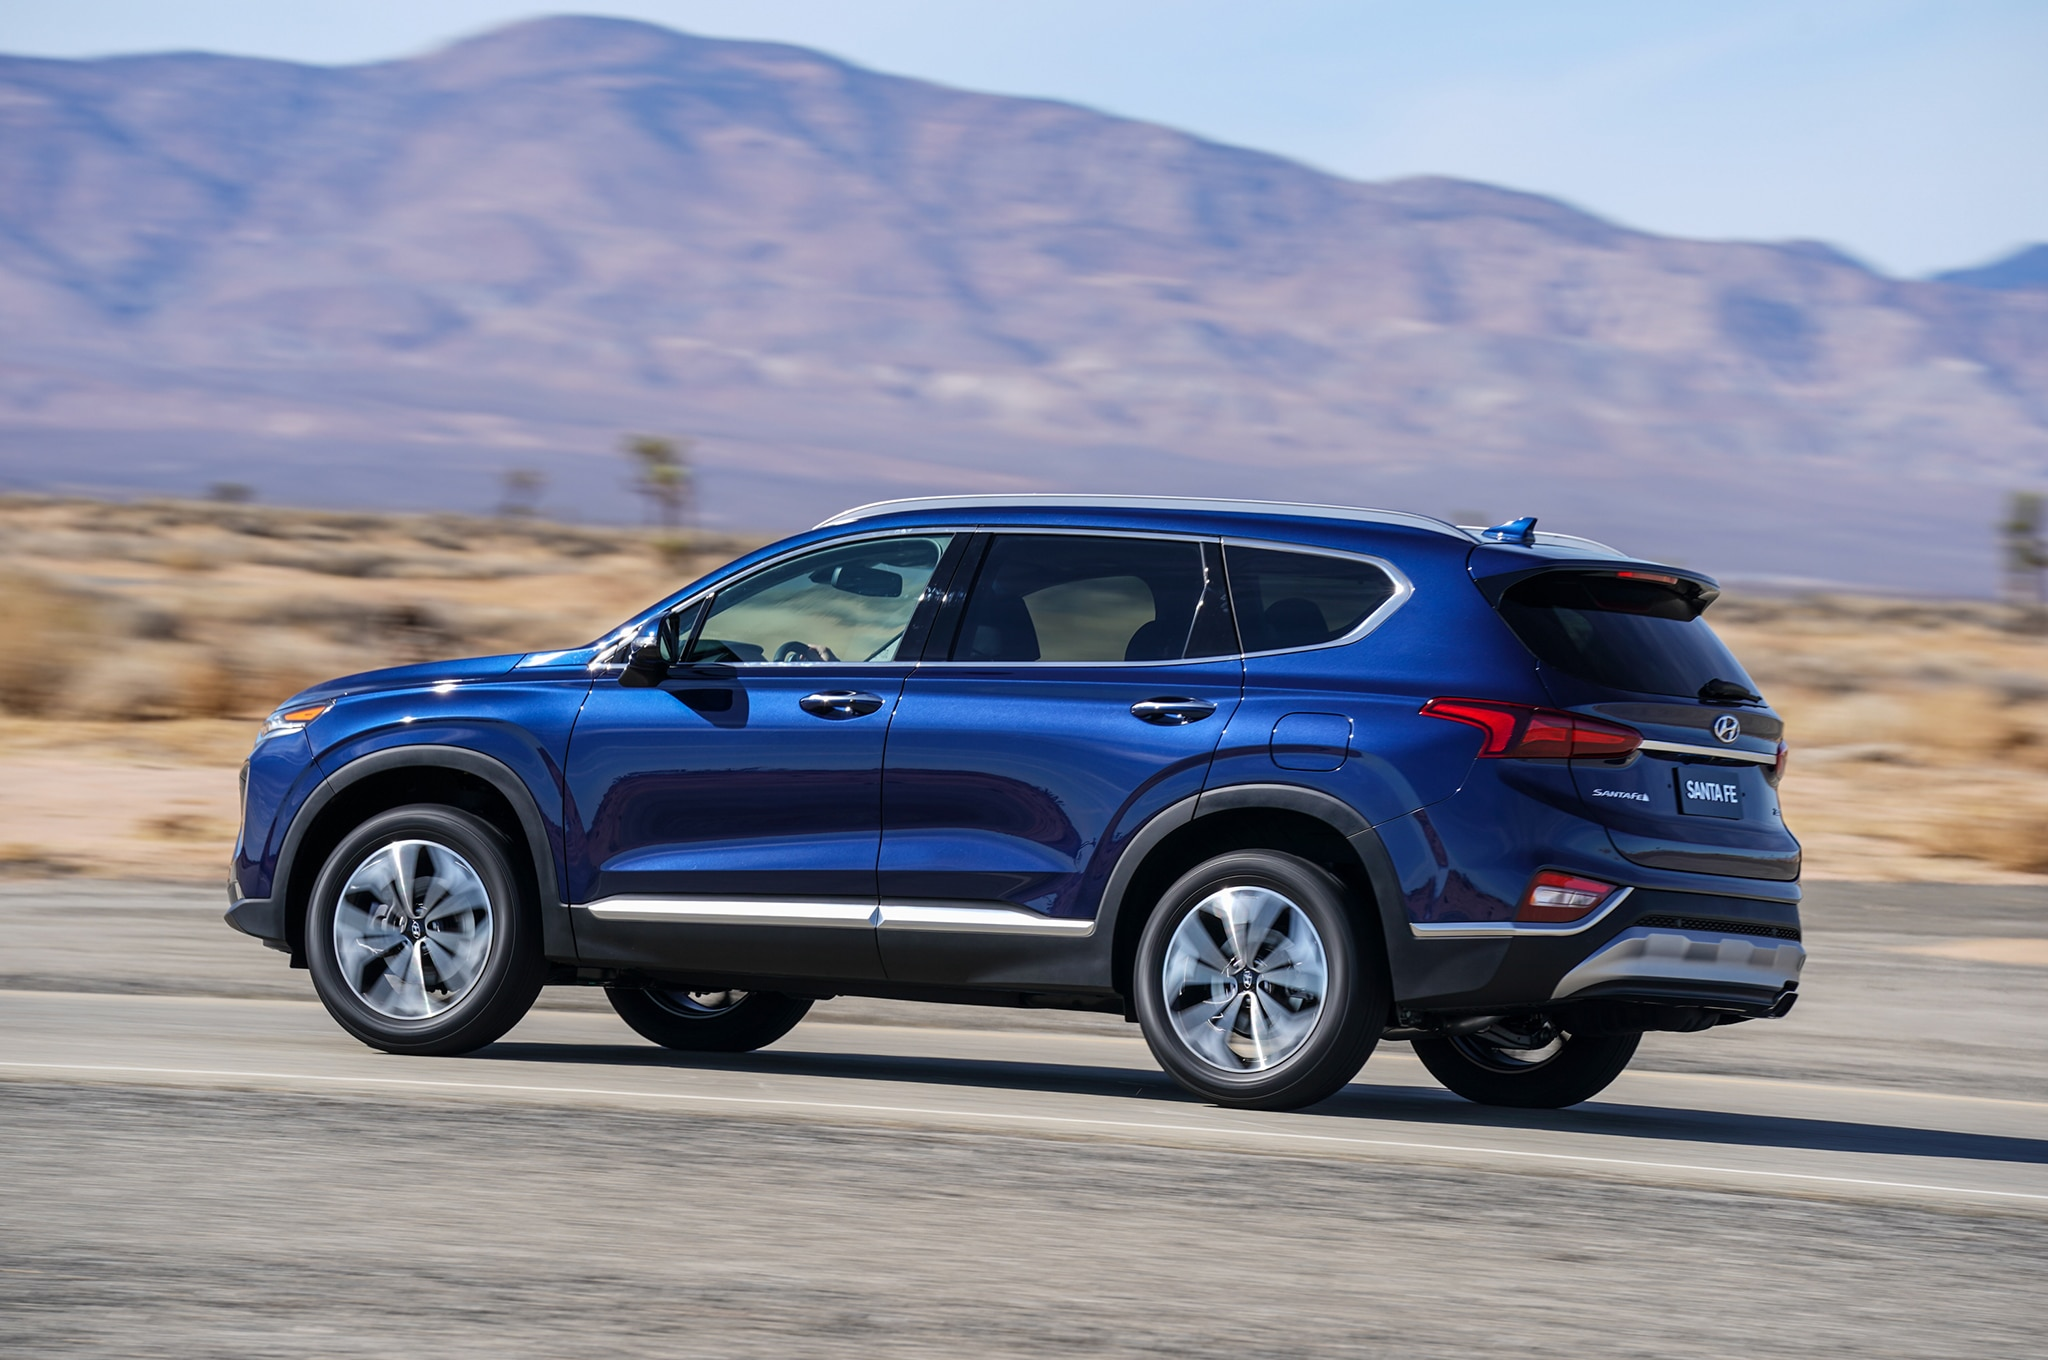 2019 Hyundai Santa Fe Rear Three Quarter In Motion 01